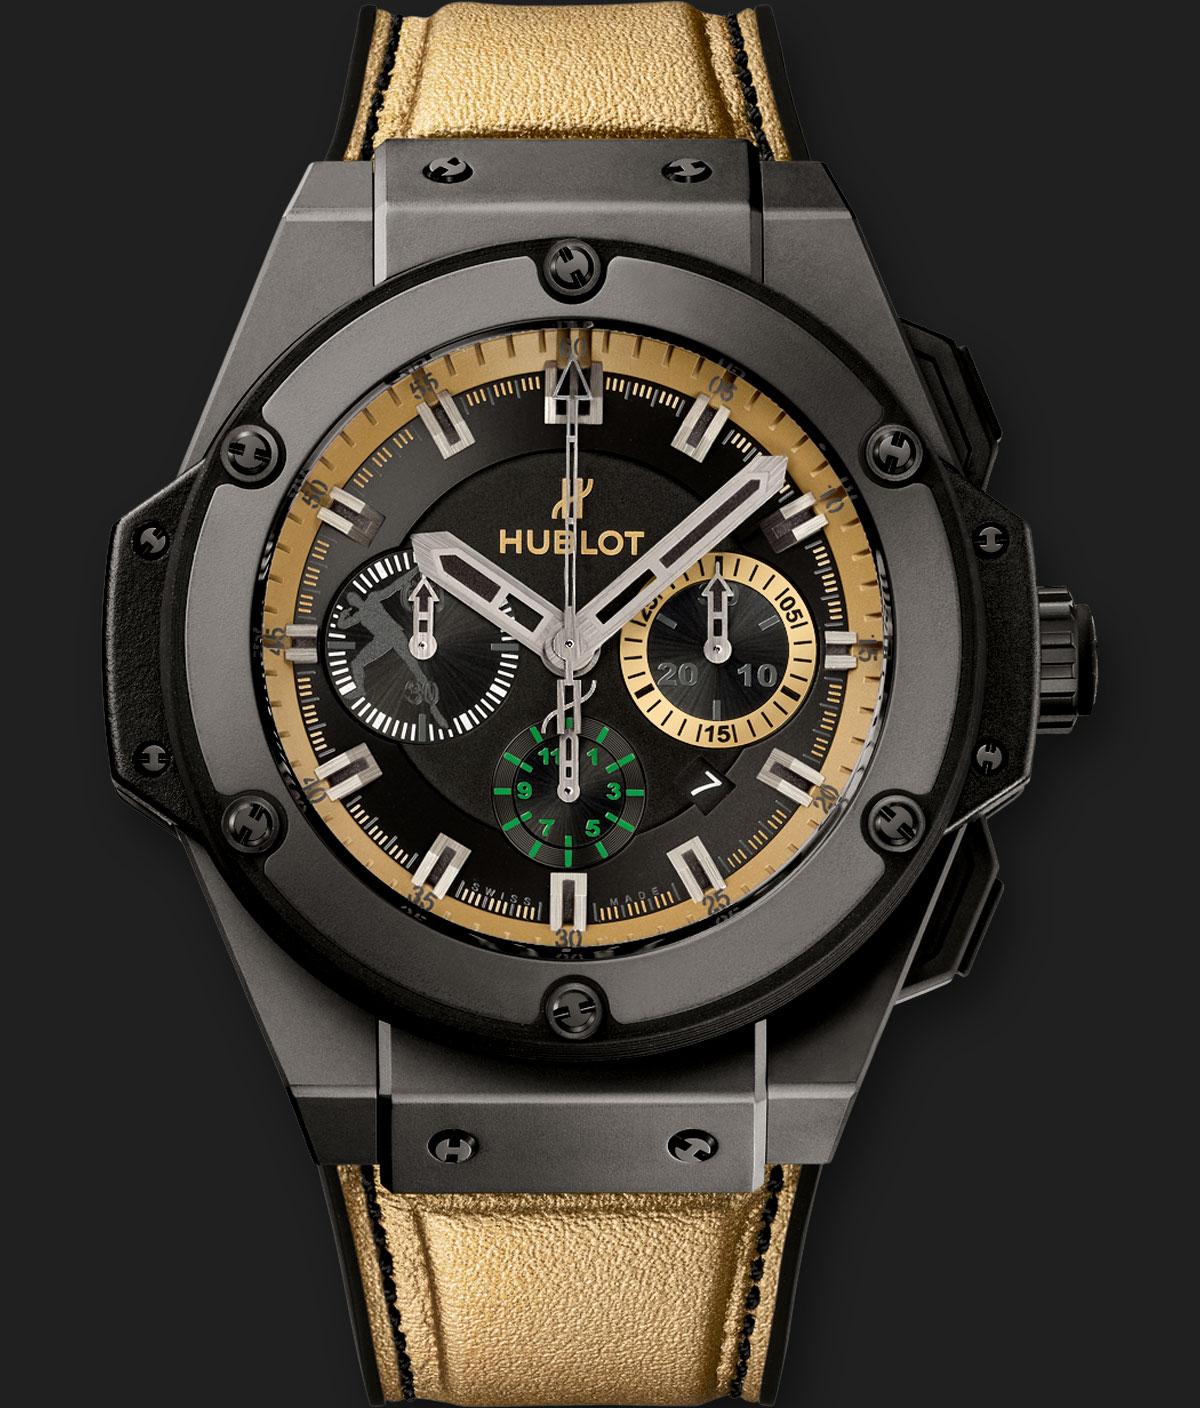 hublot watches usain bolt. Black Bedroom Furniture Sets. Home Design Ideas